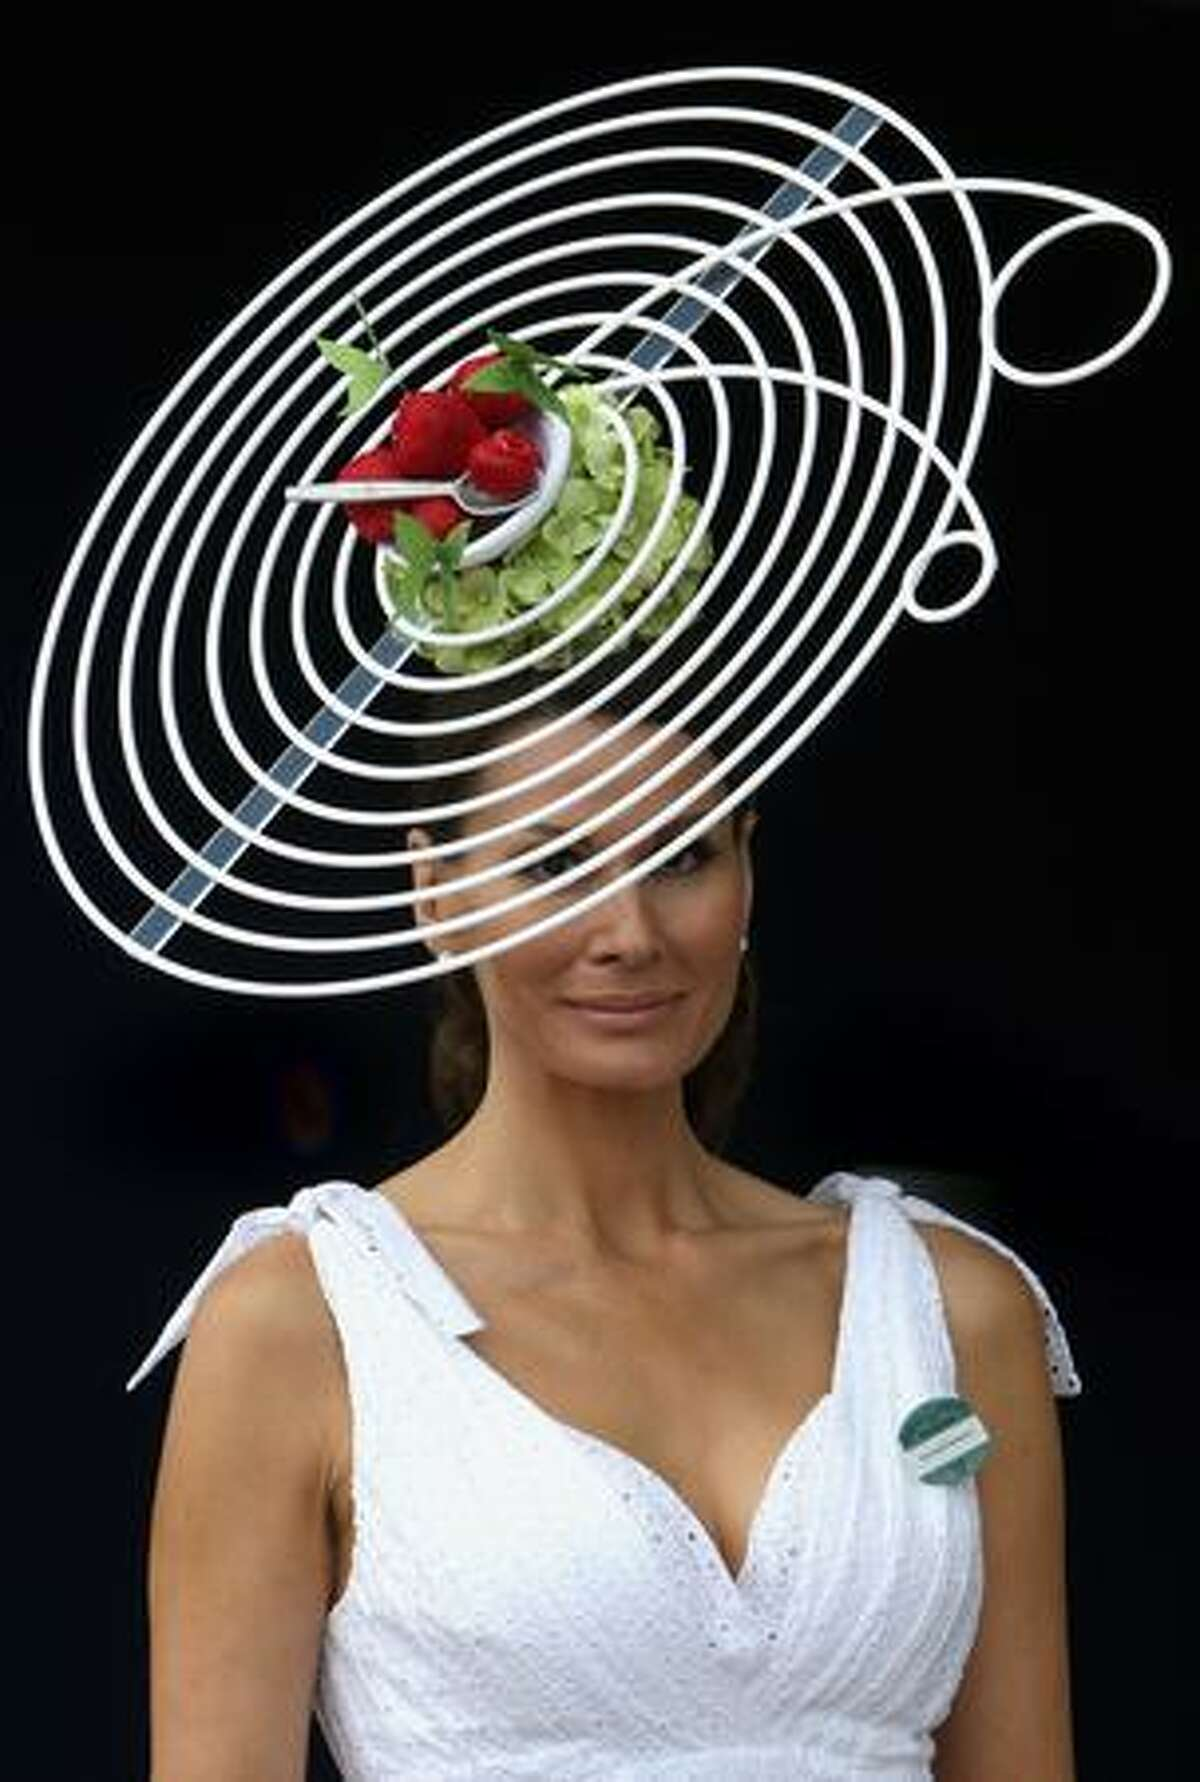 Isabella Christensen poses for a photograph in her hat as she arrives on the first day of Royal Ascot 2009 at Ascot Racecourse in Ascot, England.